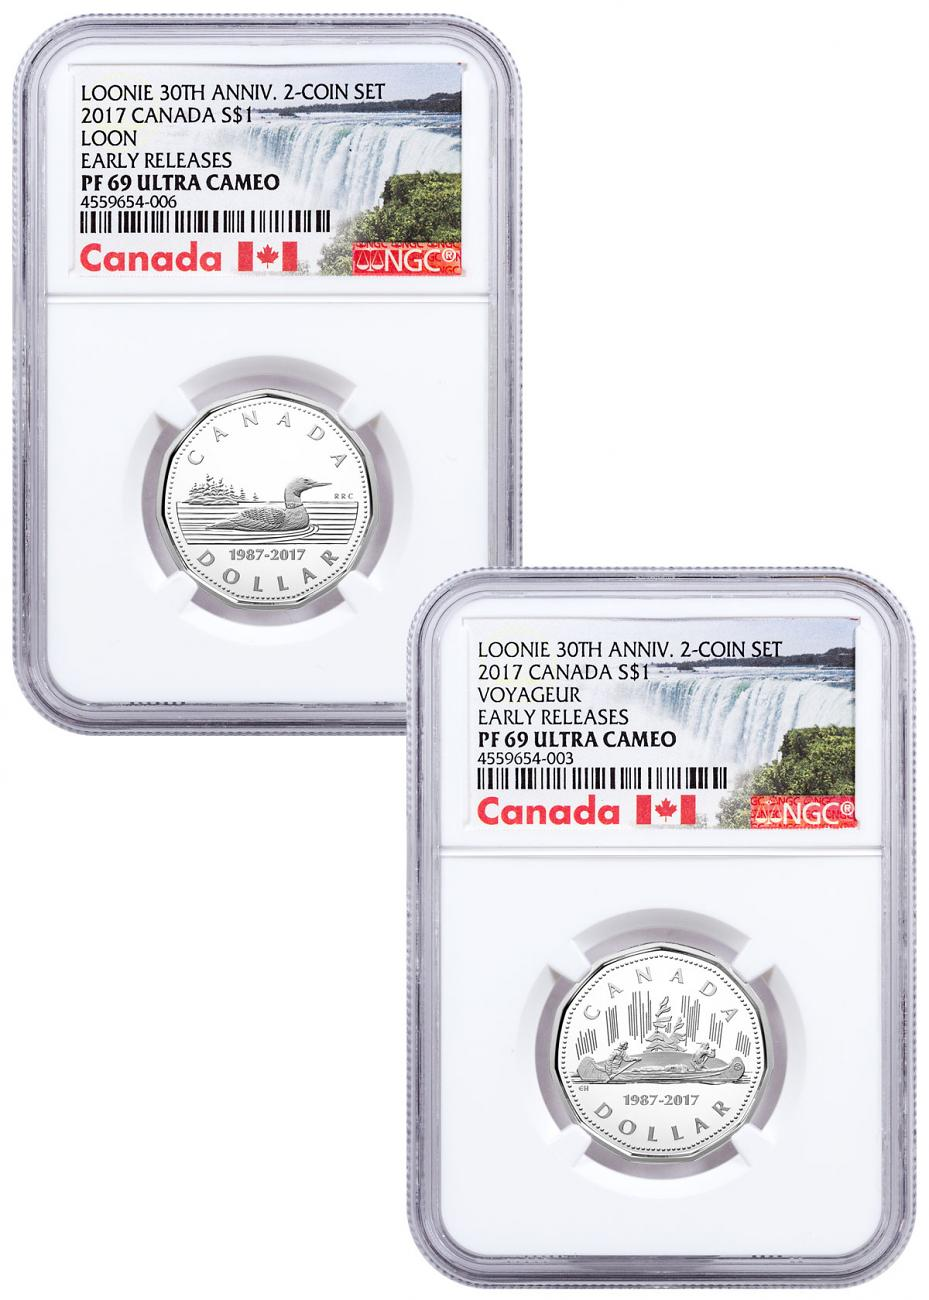 Set of 2 - 2017 Canada Loon 30th Anniversary - 1/4 oz Silver Proof $1 Coins NGC PF69 UC ER Exclusive Canada Label